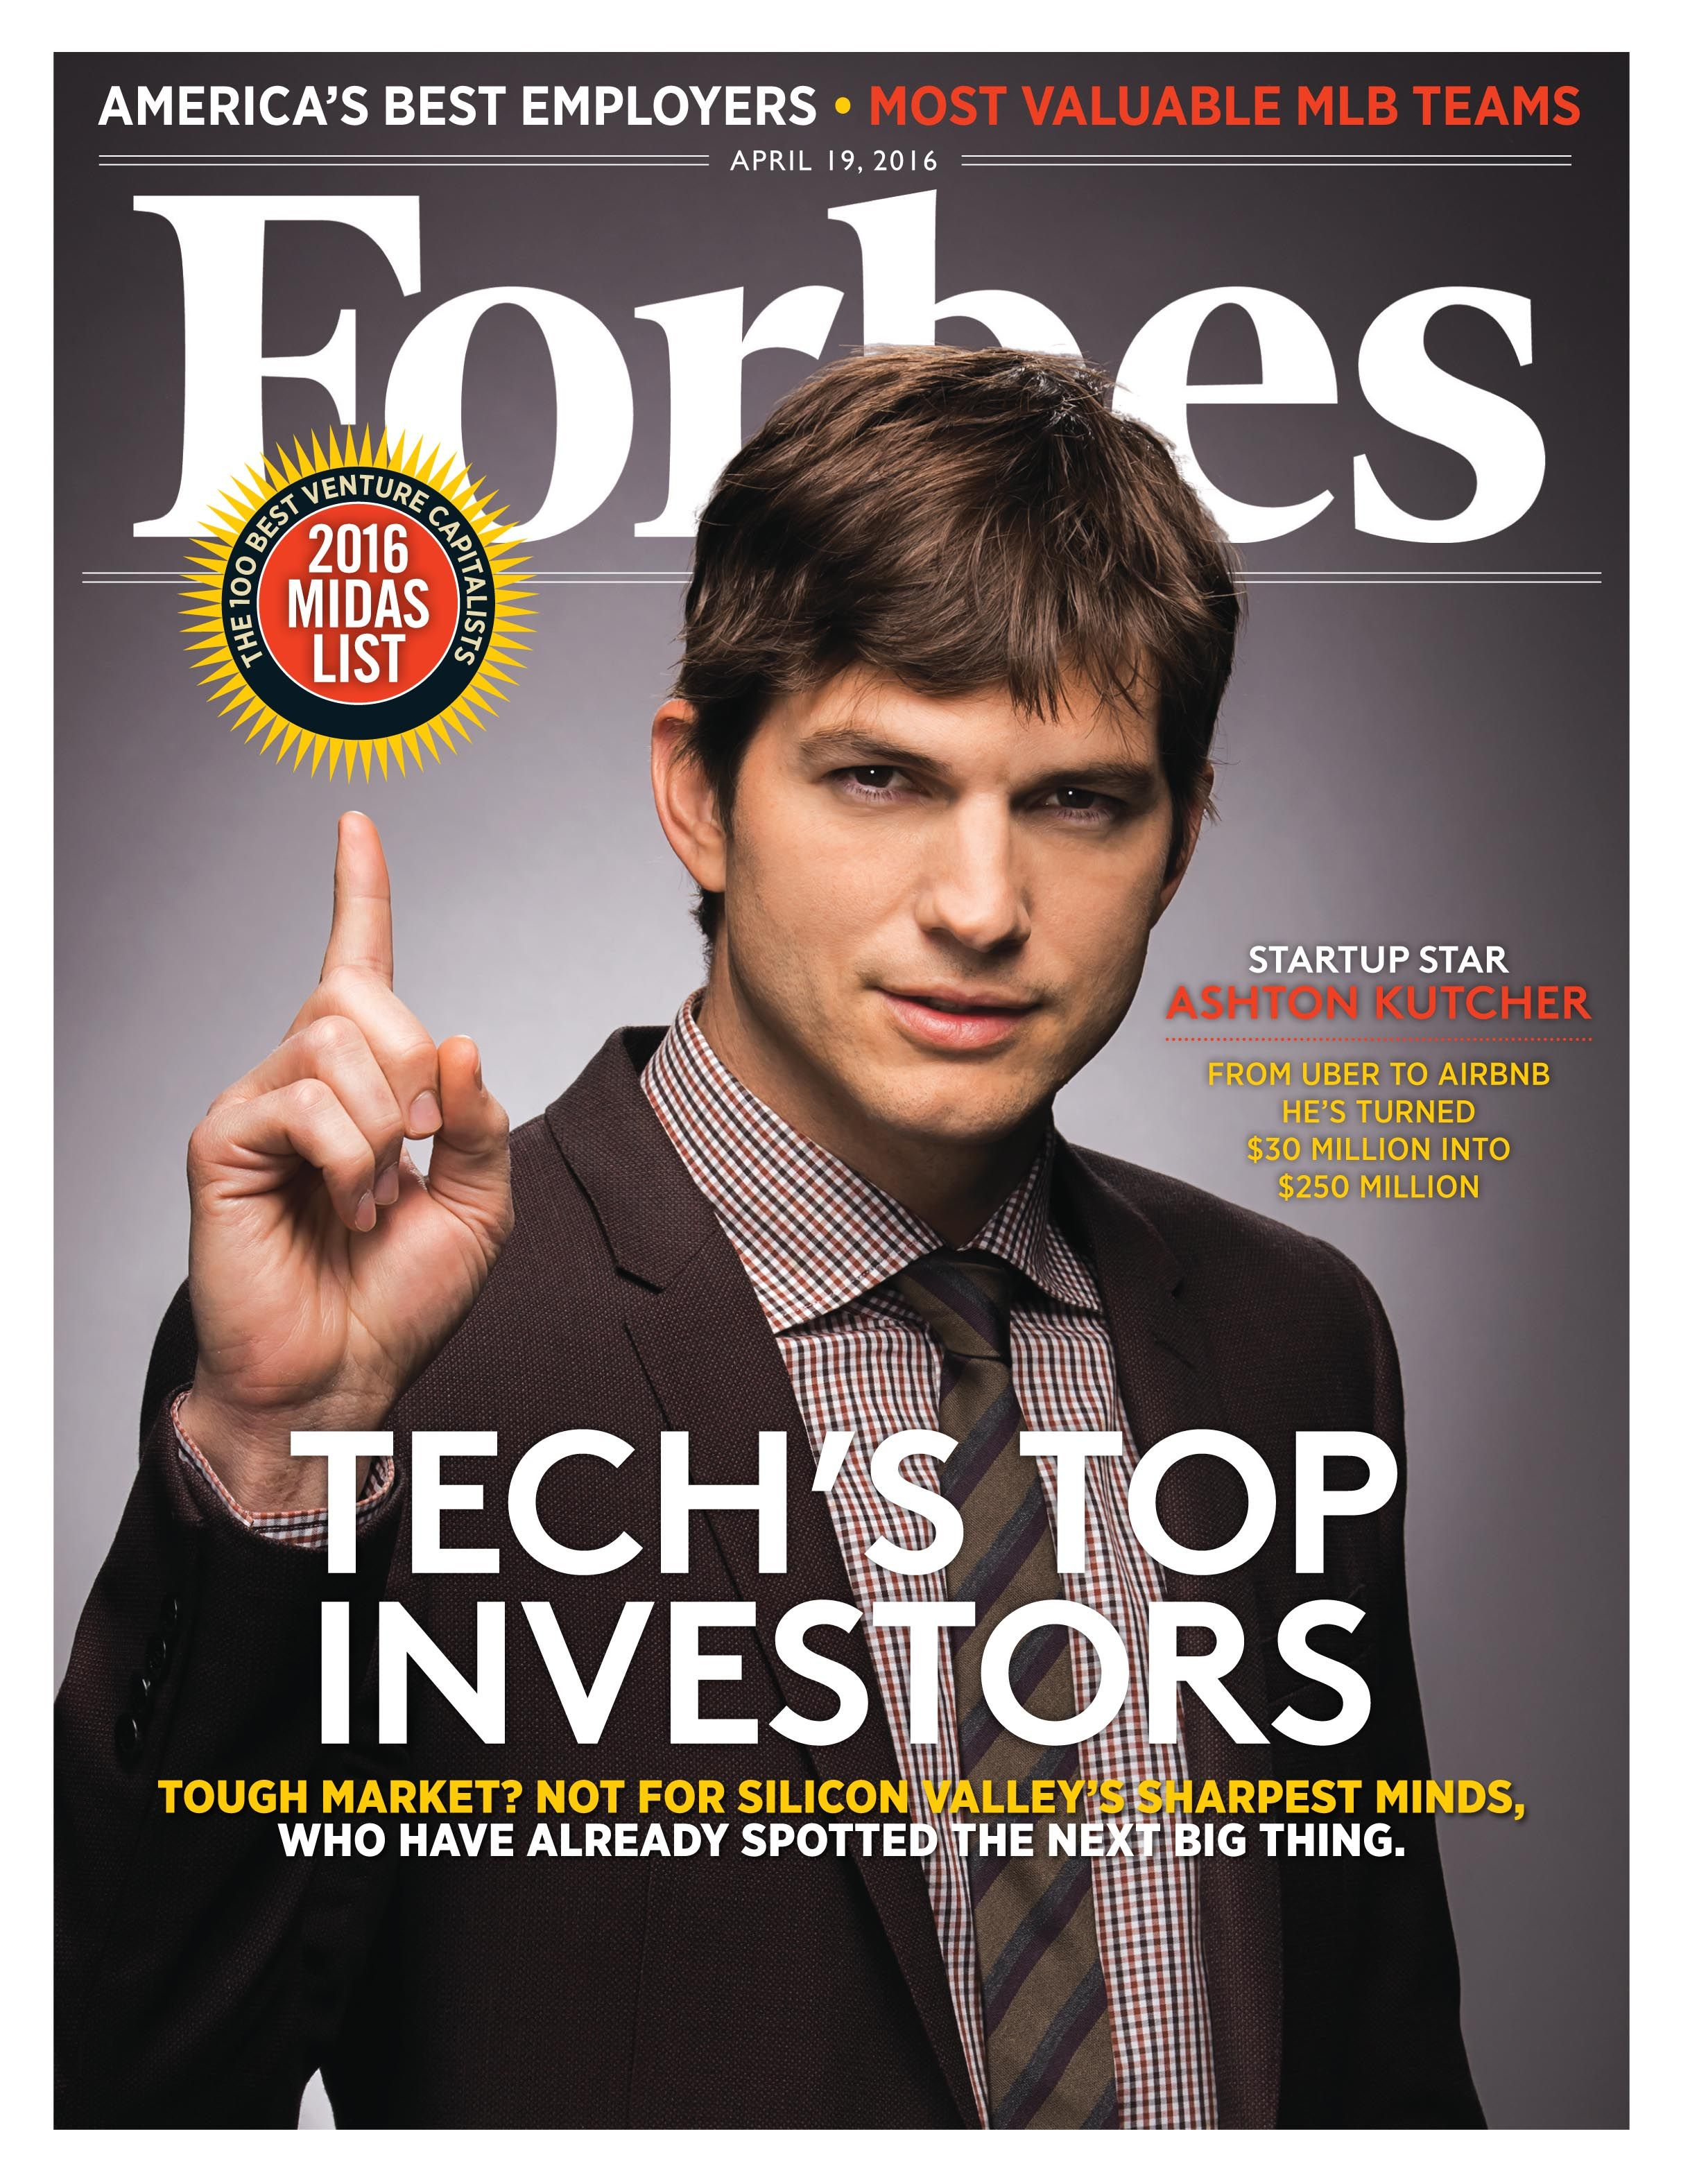 The cover of a Forbes magazine in April of 2016